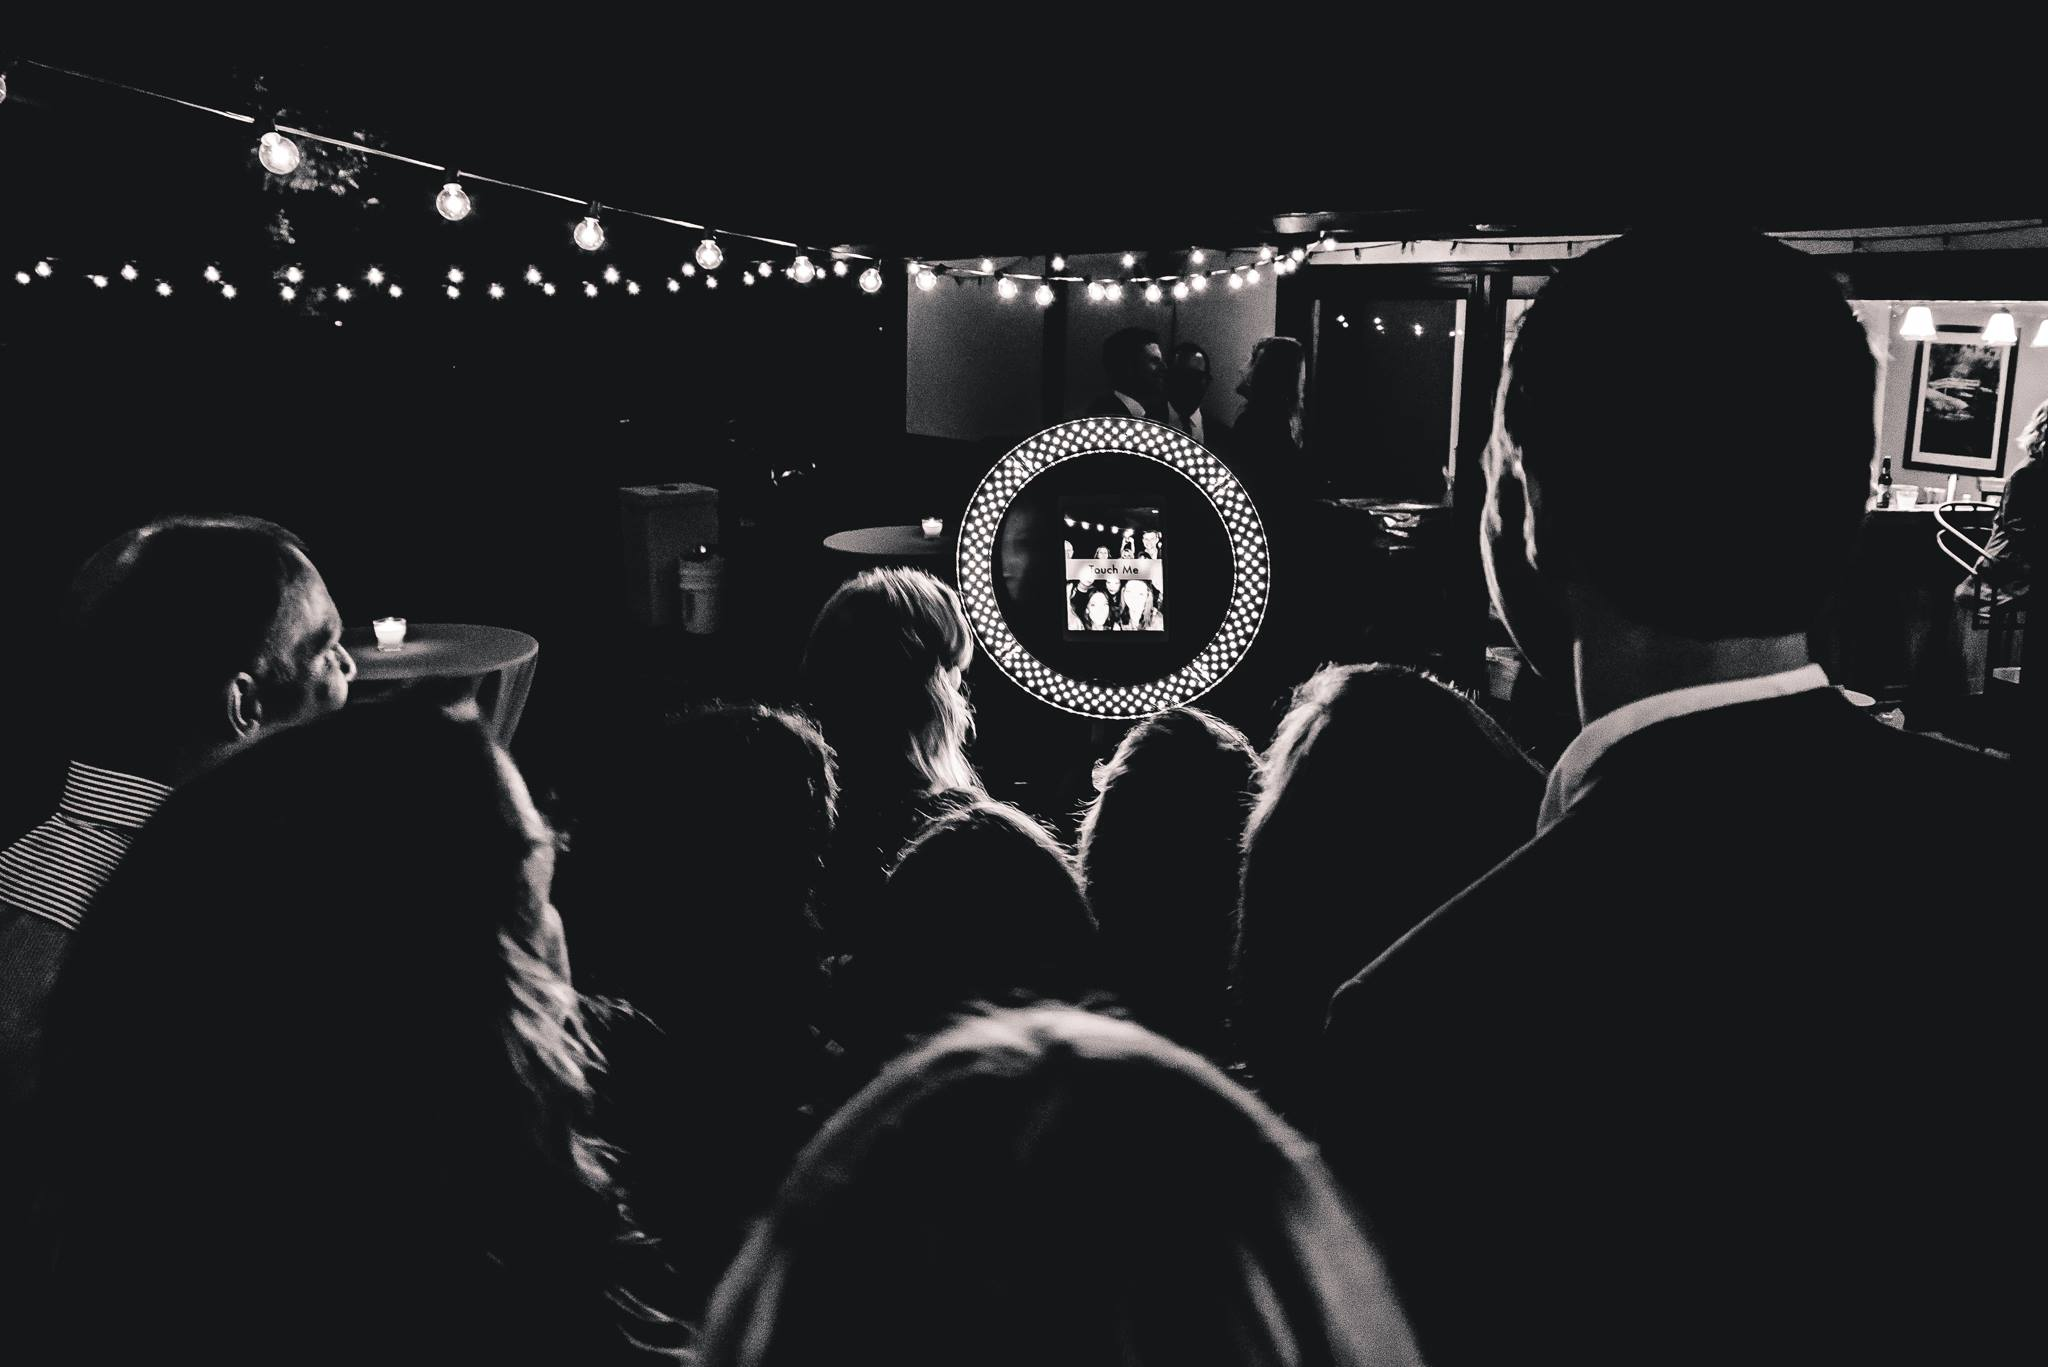 It's not that boringphoto-booth - GIF is the new thing and its not that printing photo booth which sits outside and takes your dancefloor outside in the lobby. You can put next to the bar or dance floor so action is captured